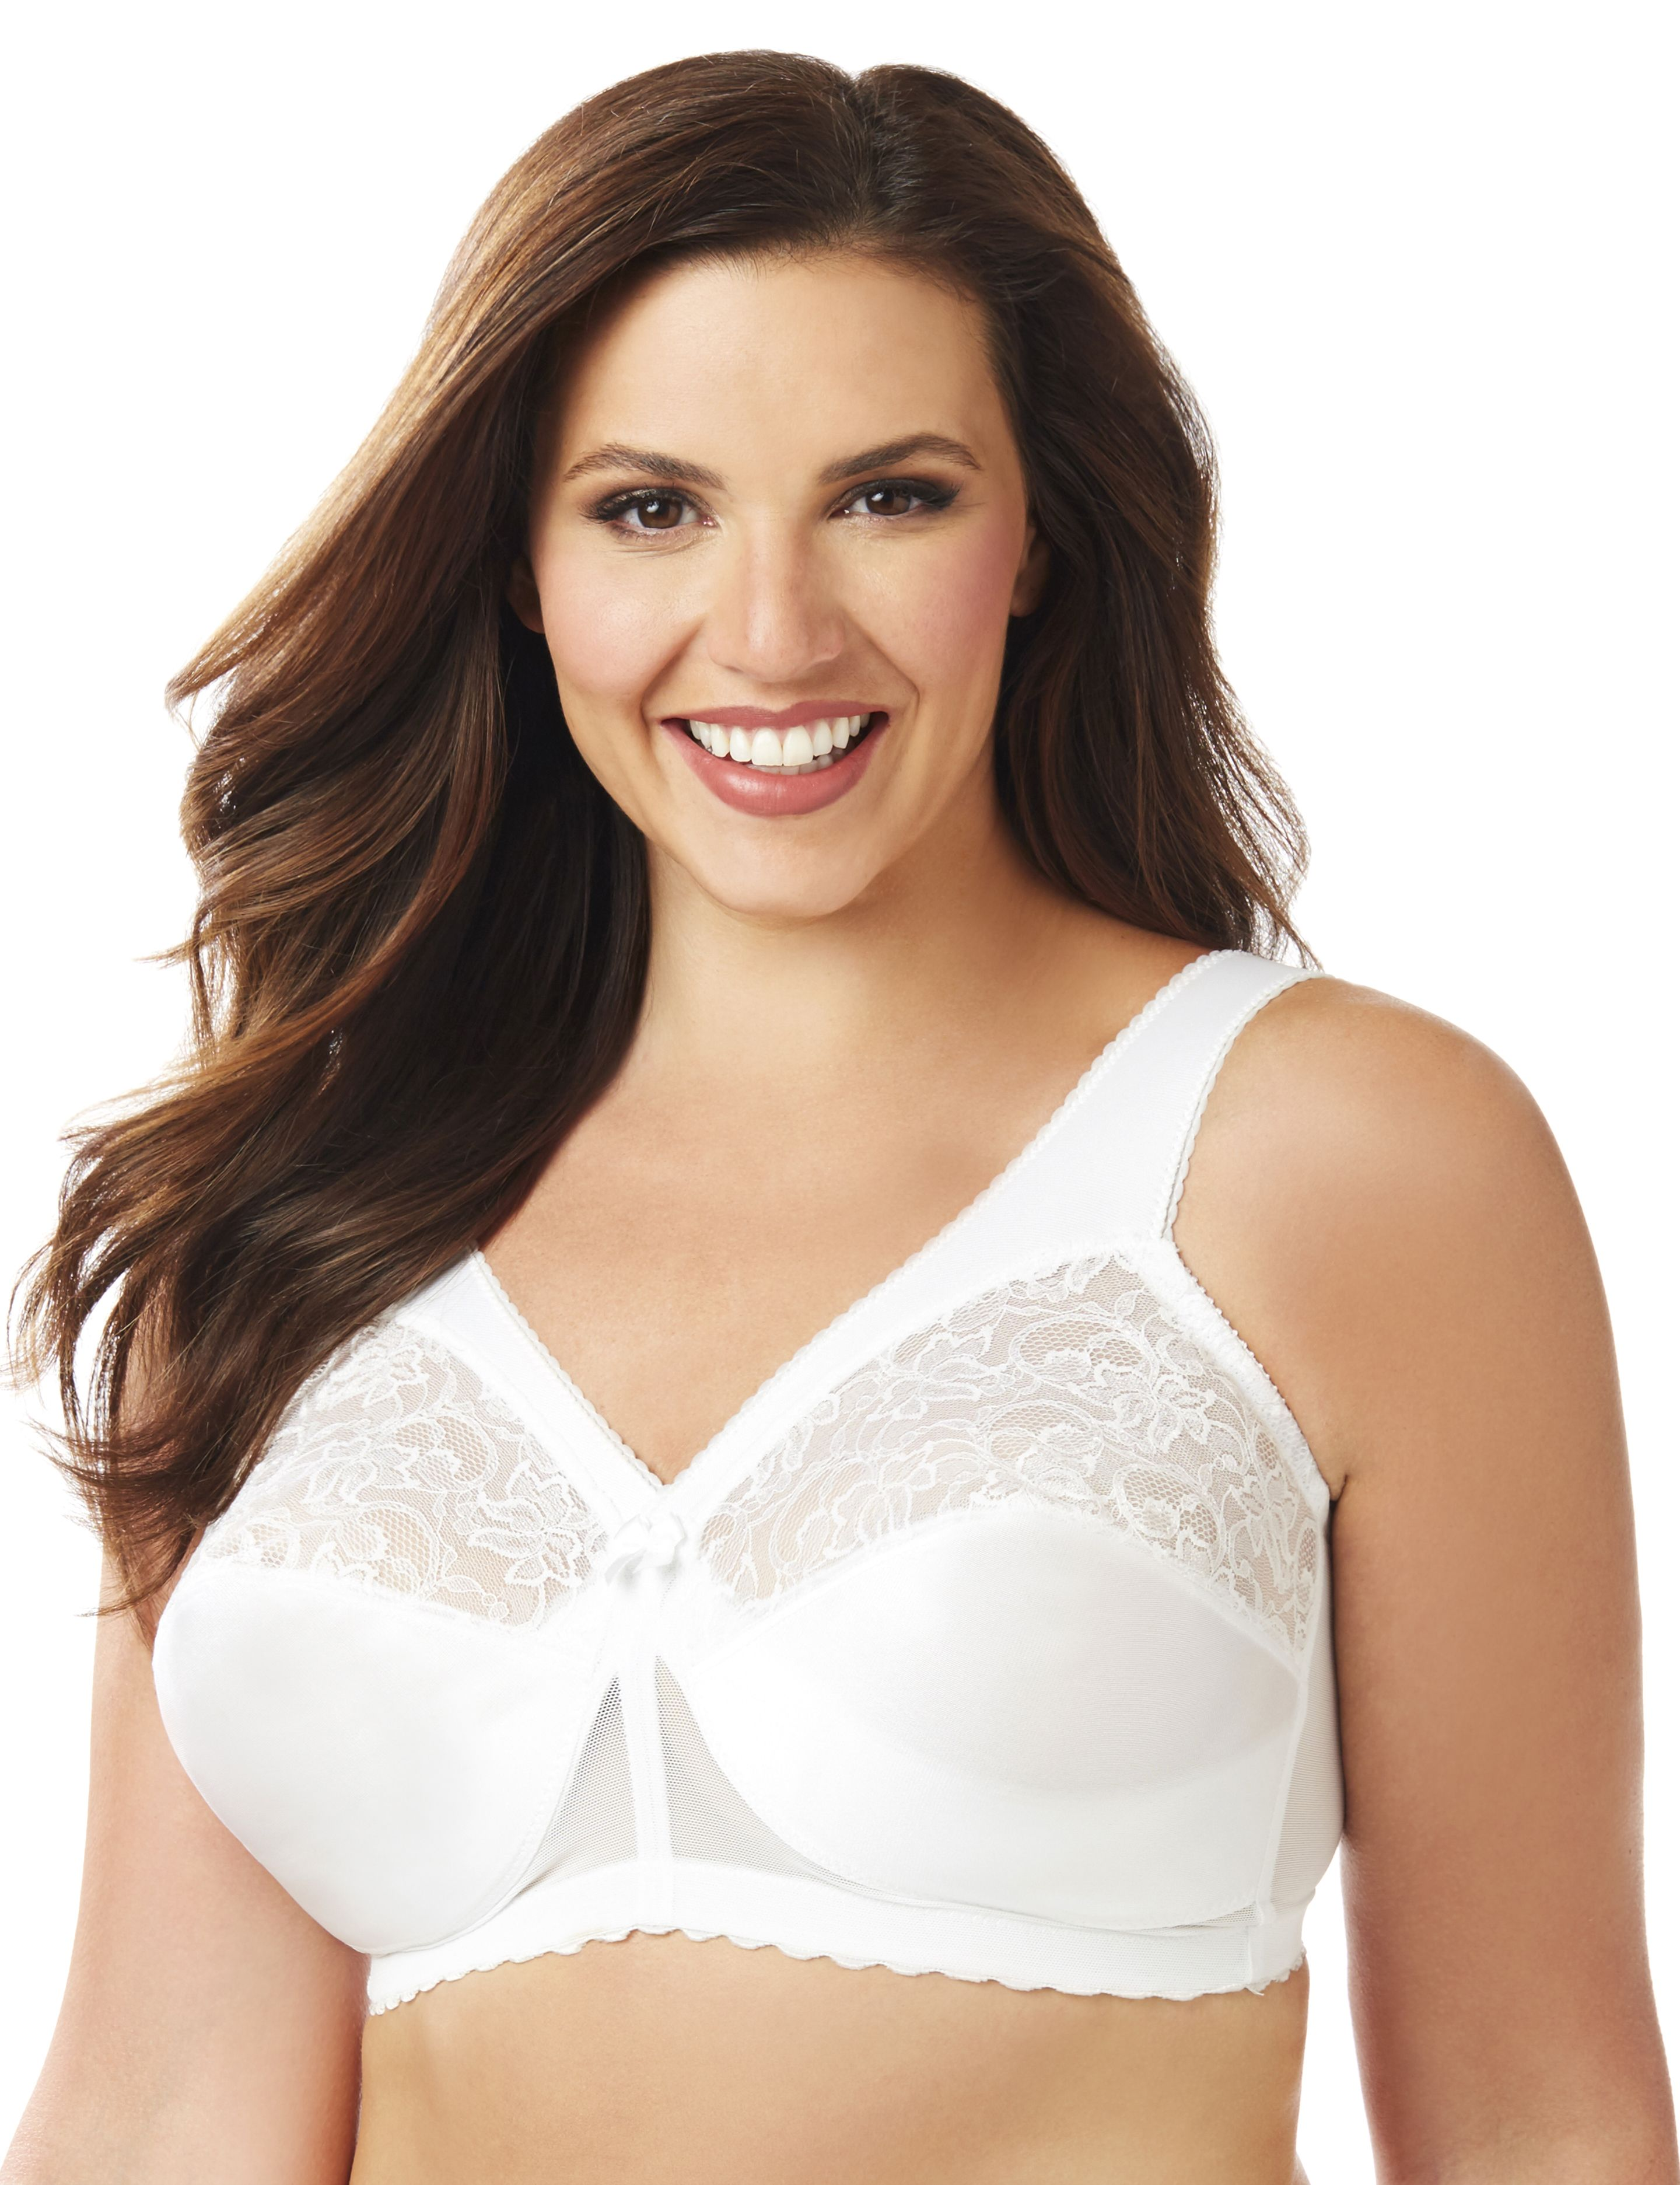 Glamorise 1000 Magic Lift No-Wire Bra Glamorise 1000 Magic Lift No-Wire Bra MP-000053452